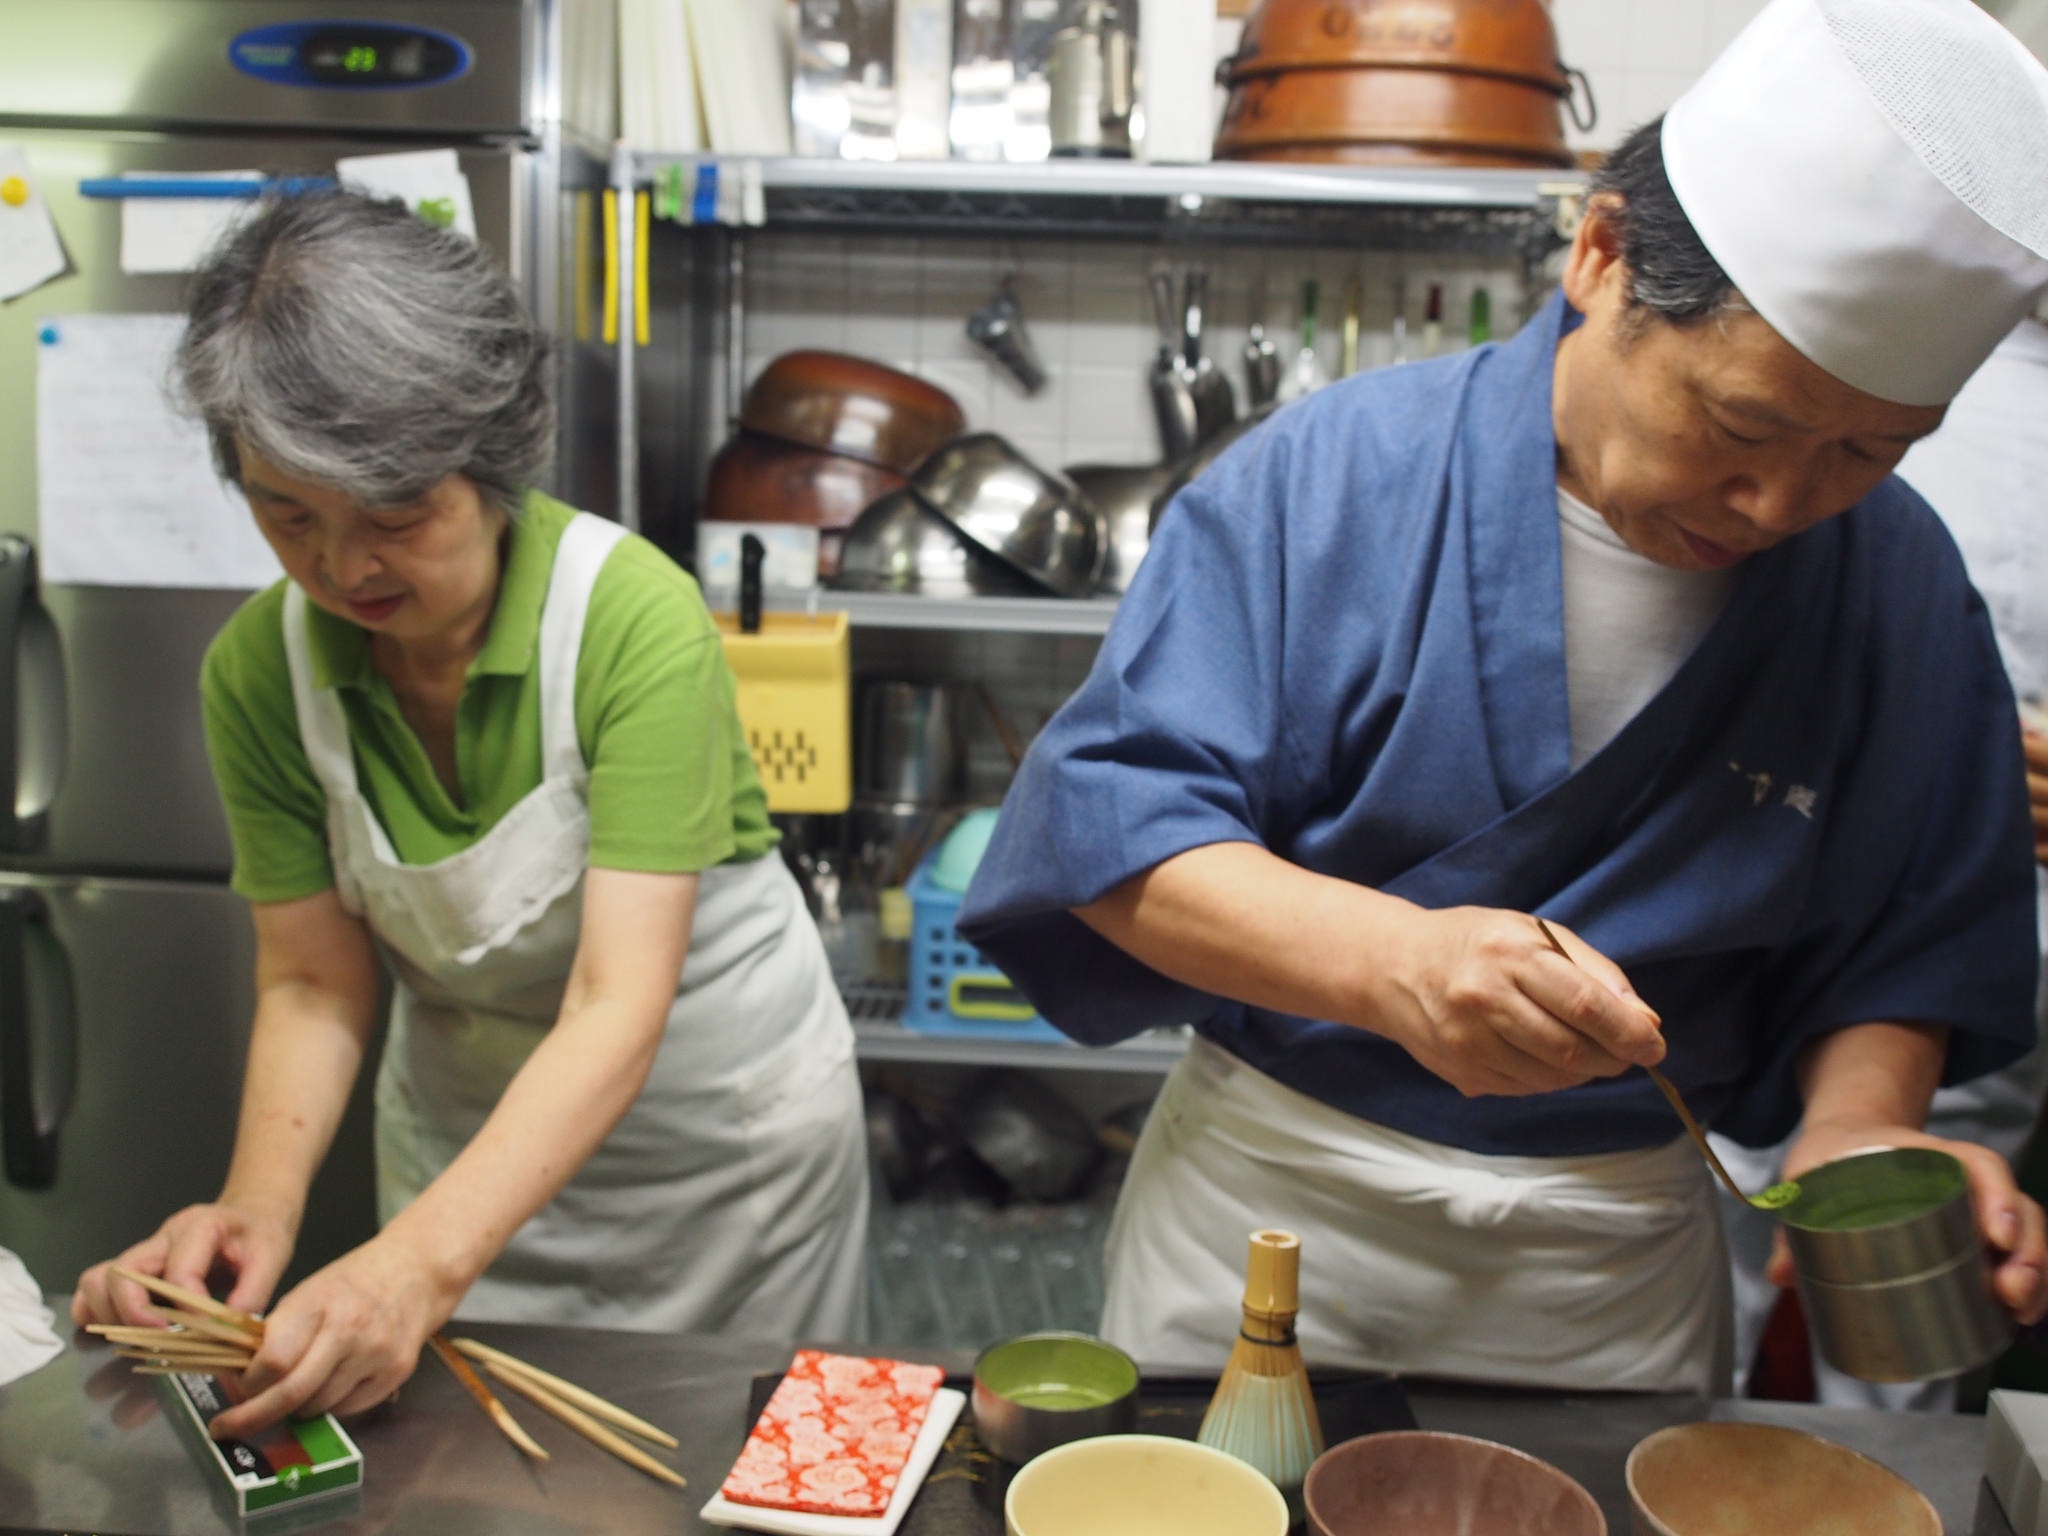 Preparations to enjoy wagashi also include making tea, which is the main character of the ©TOKI